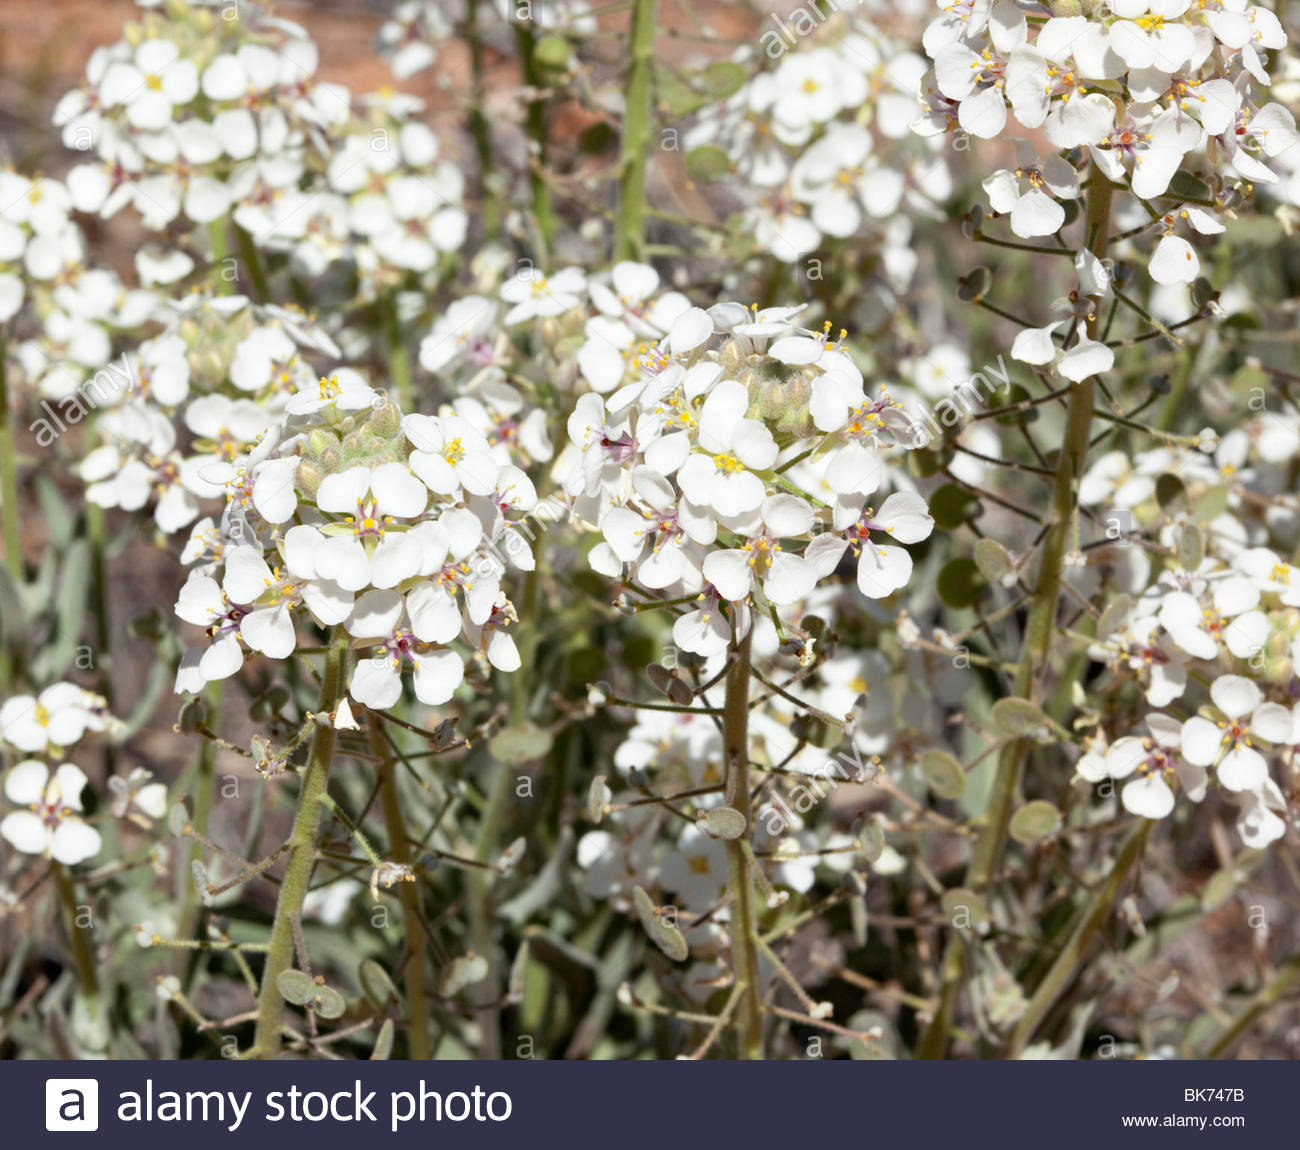 Spectacle Pod Dimorphocarpa wislizeni 'New Mexico' - Stock Image